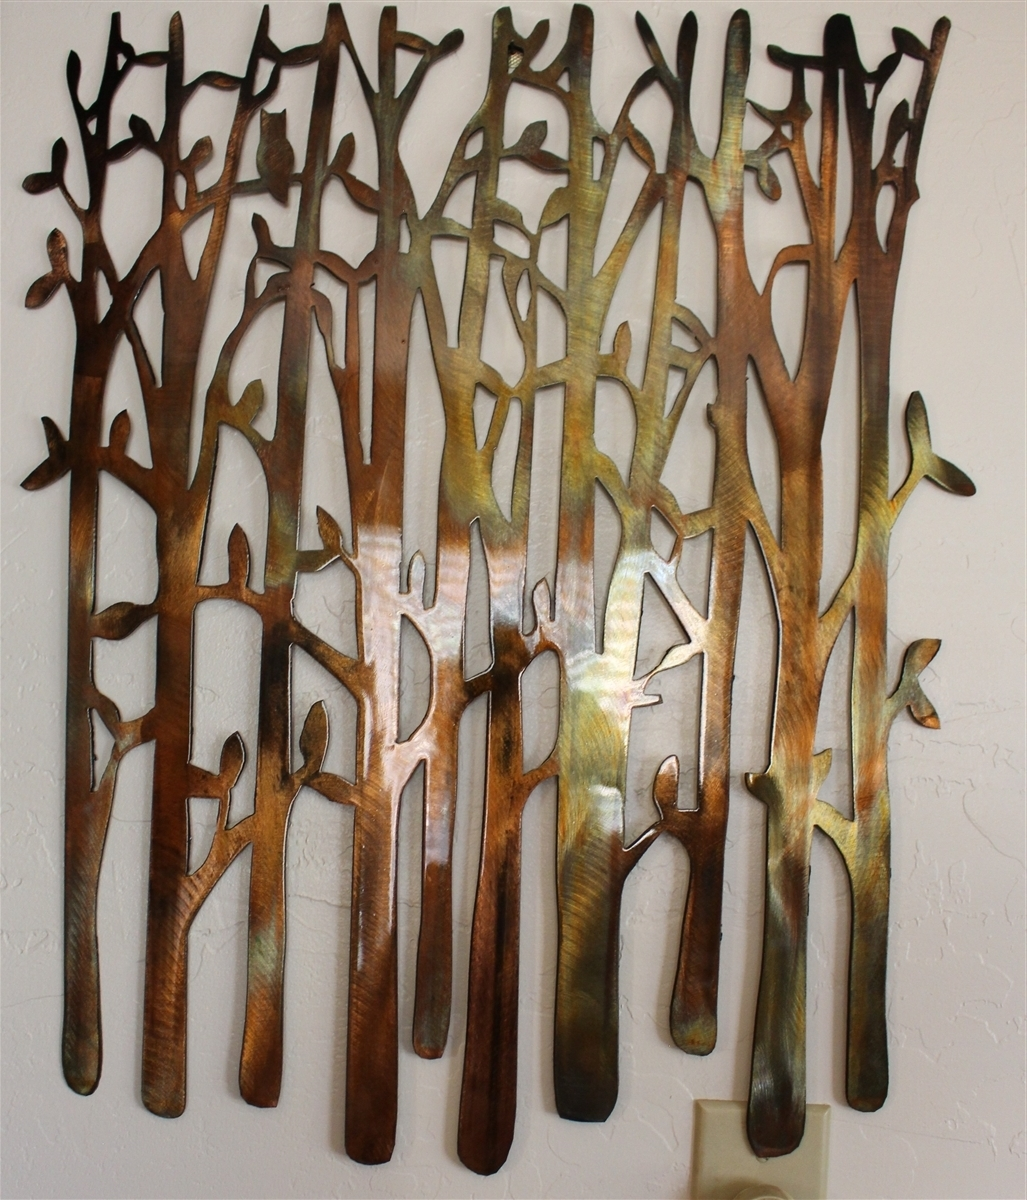 Birch Tree, Birch Tree Metal Art, Bamboo, Bird In The Trees, Bird With Newest Metal Wall Accents (View 3 of 15)